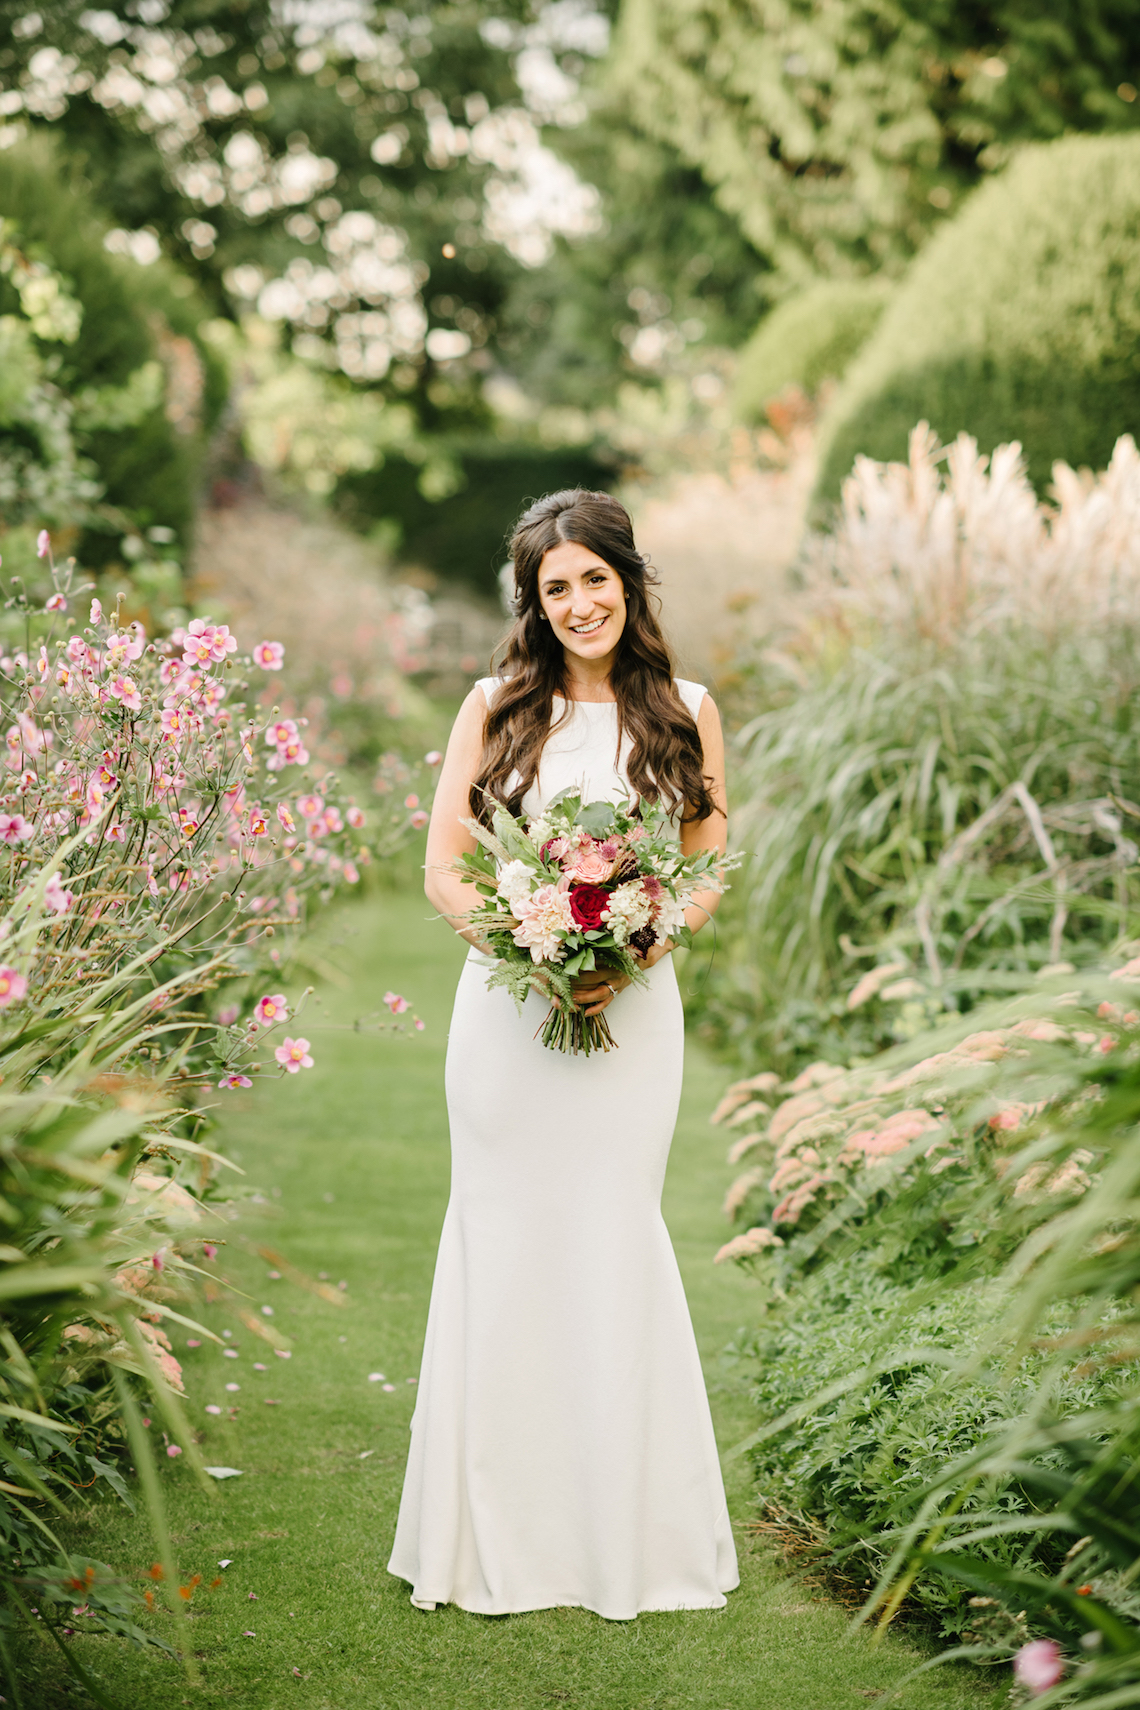 A Floral Explosion At An English Garden Wedding | Dominique Bader 24